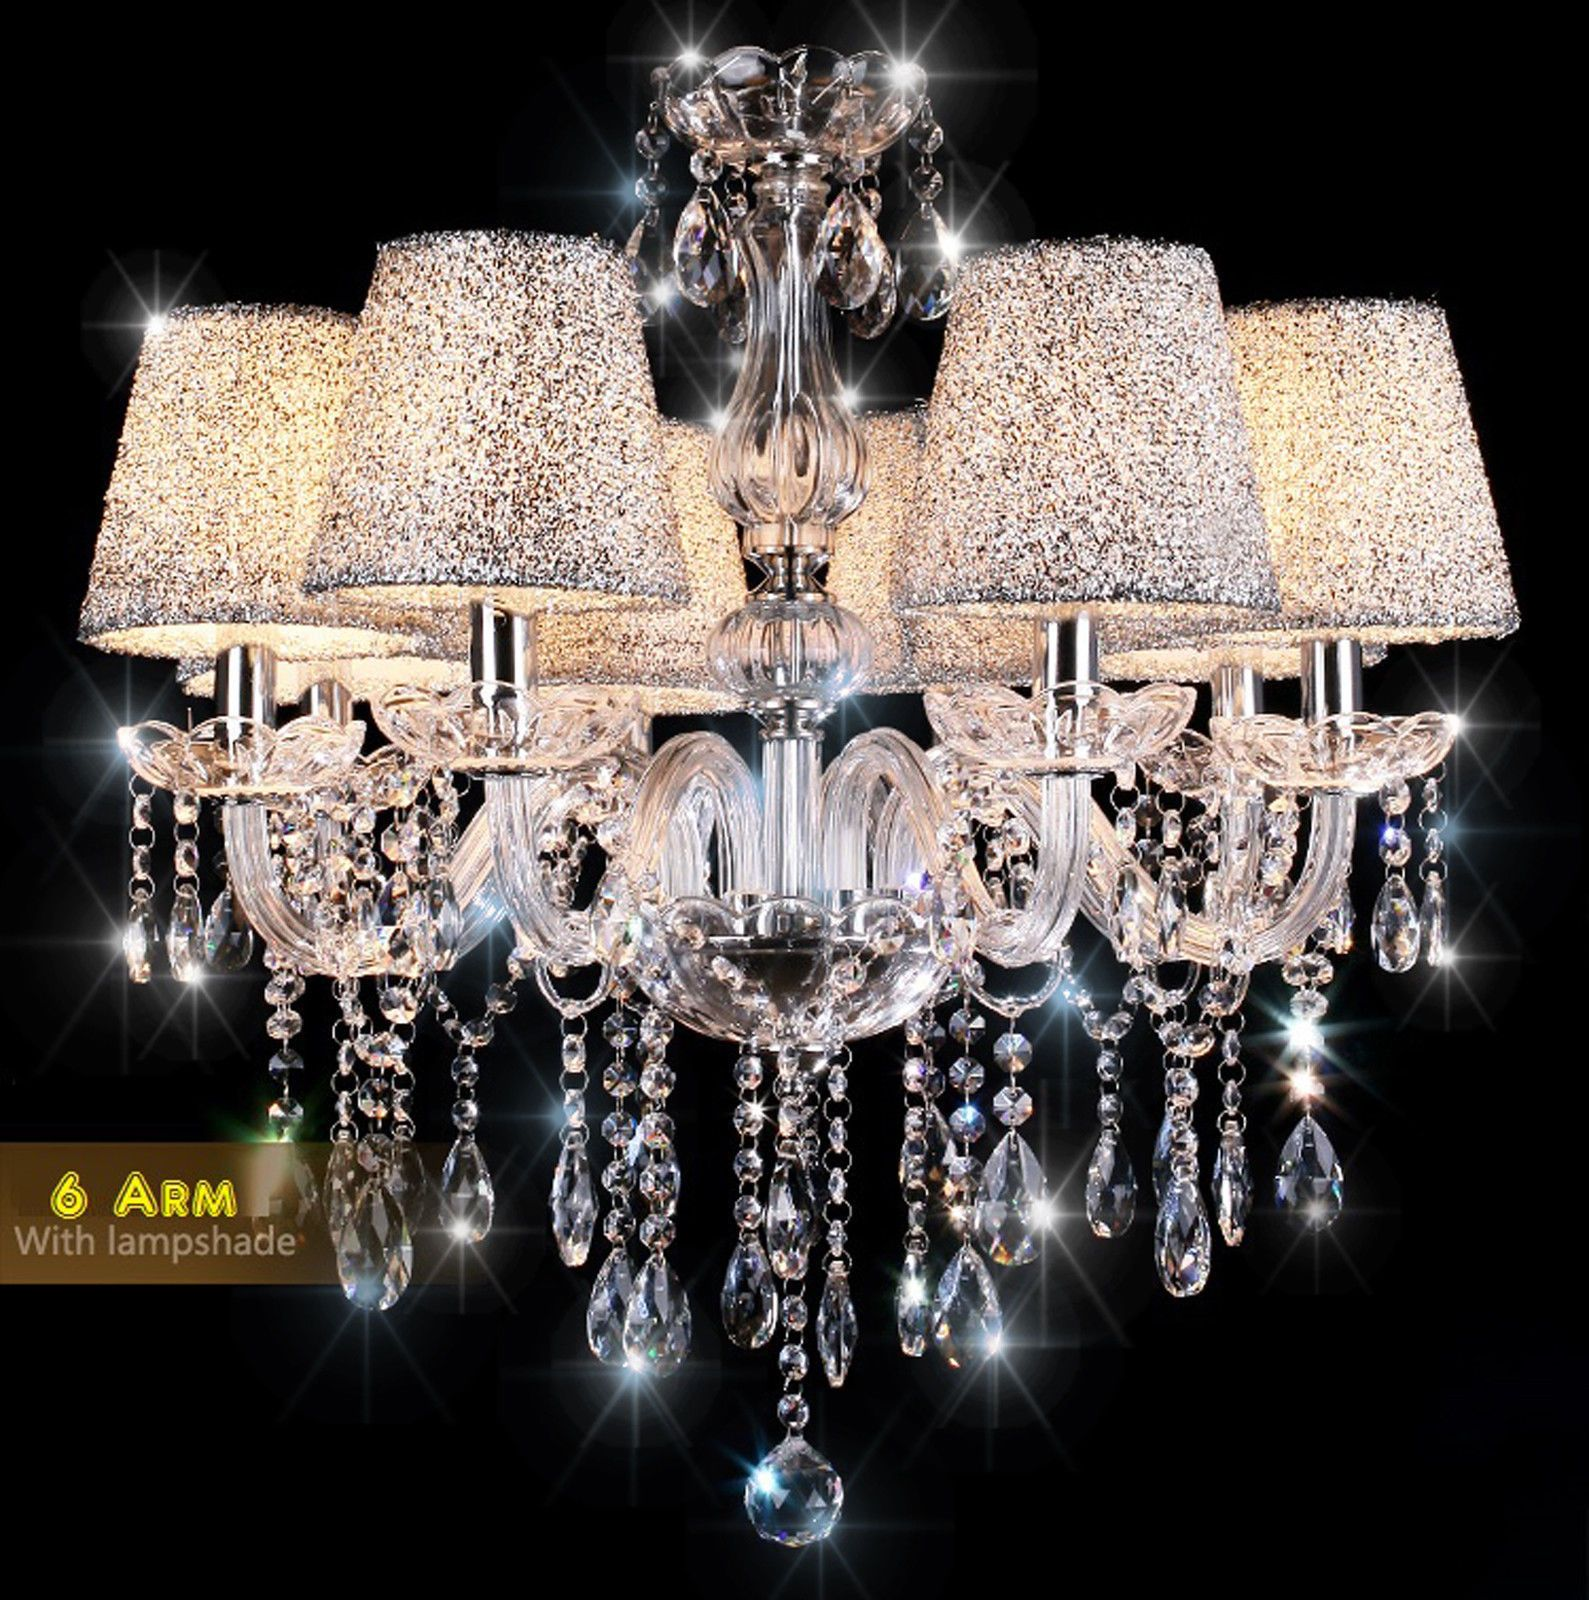 Chandeliers Ceiling Lights Hanging Ceiling Lamp | EBay